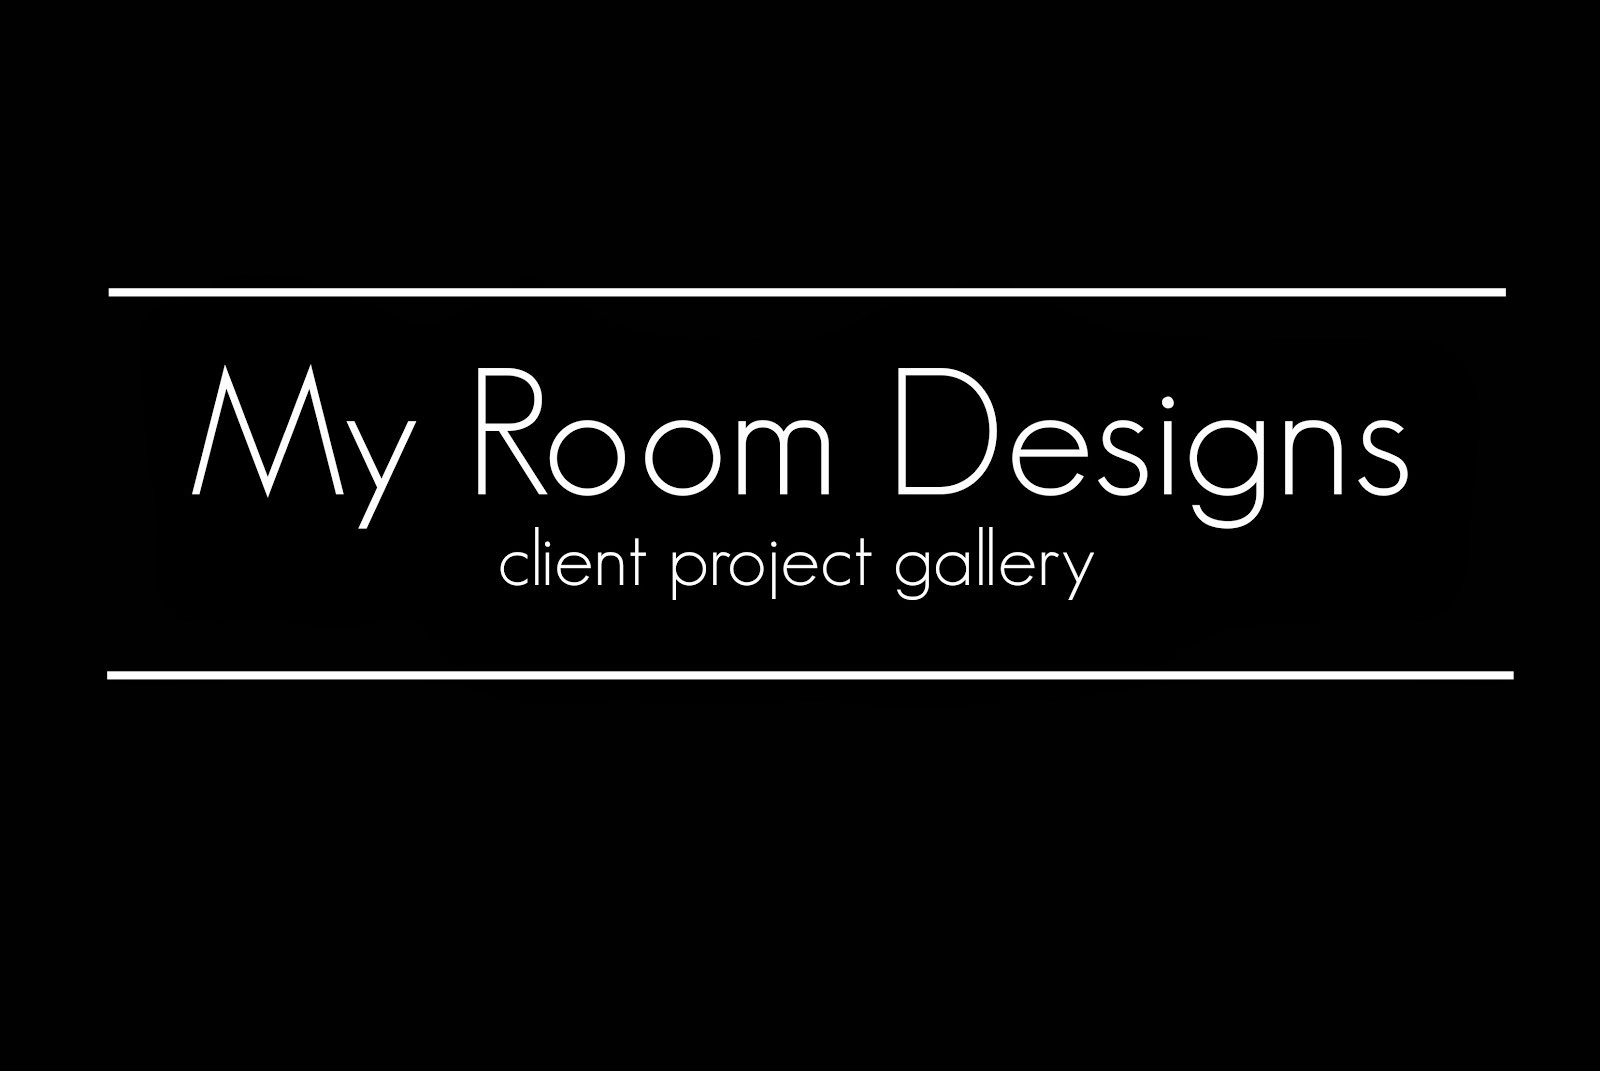 My Room Designs